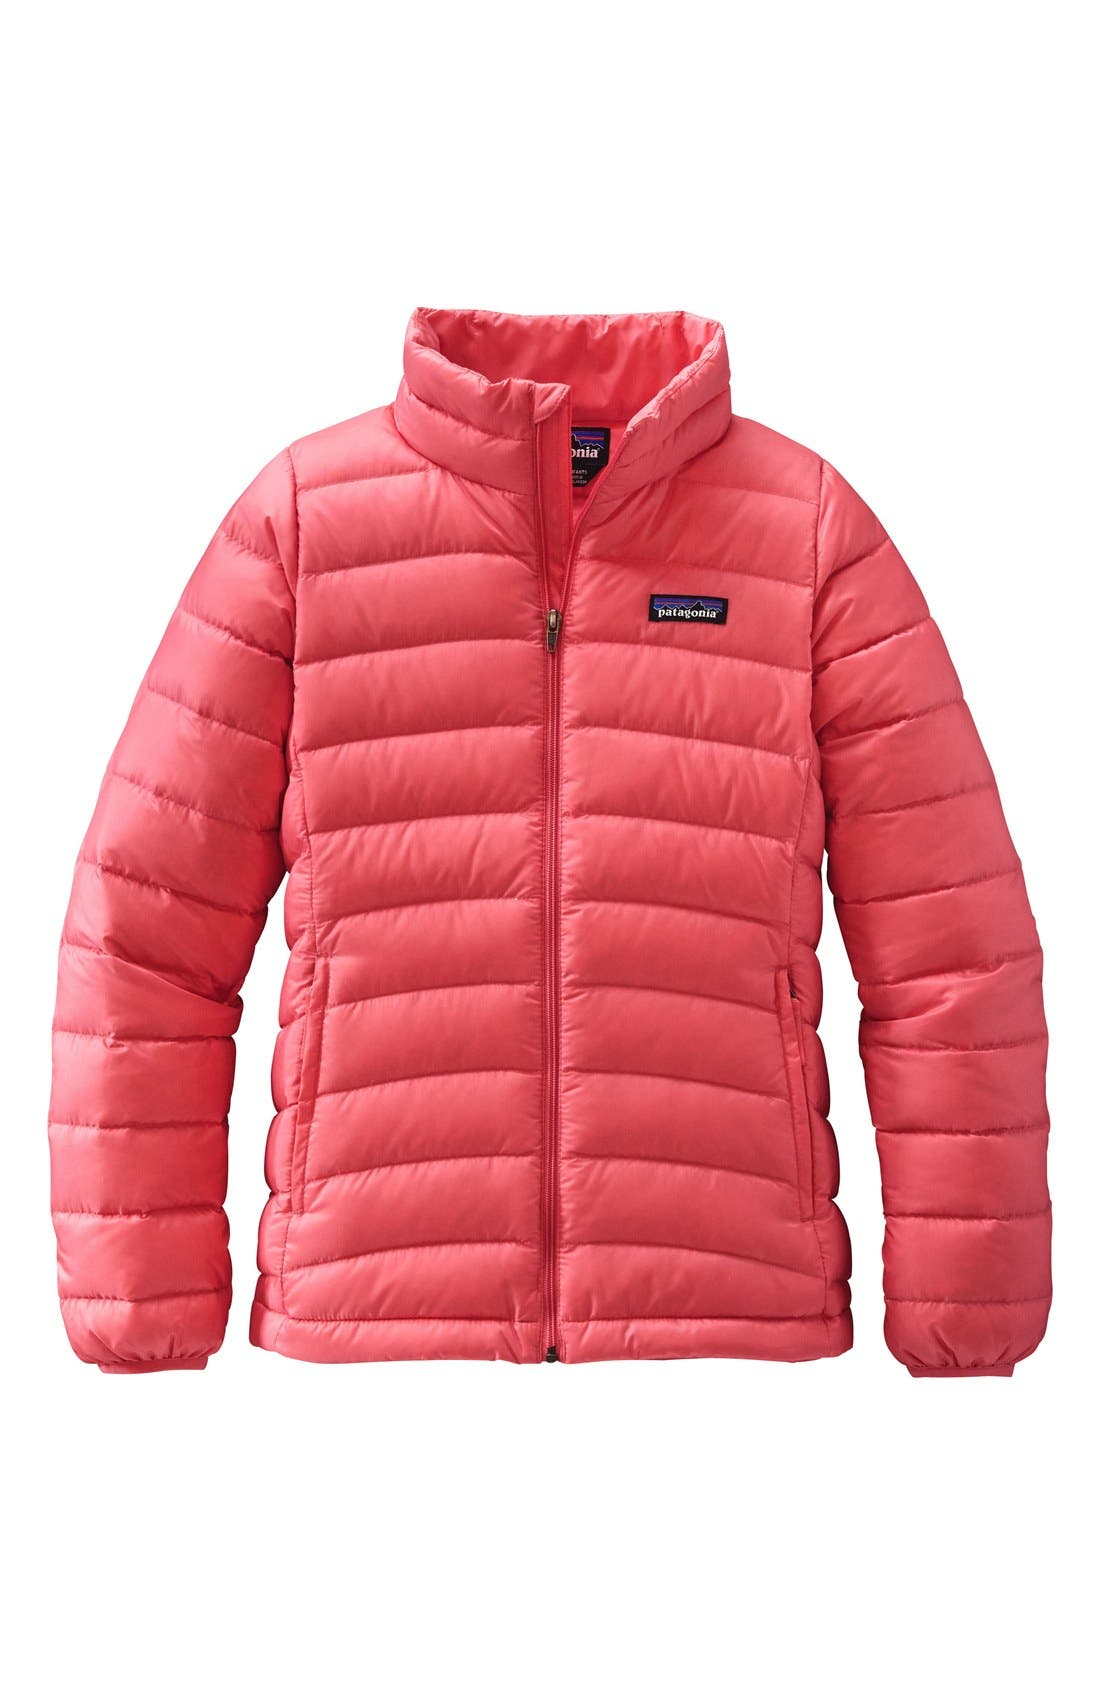 Main Image - Patagonia Water Resistant Down Insulated 'Sweater' Jacket (Little Girls & Big Girls)